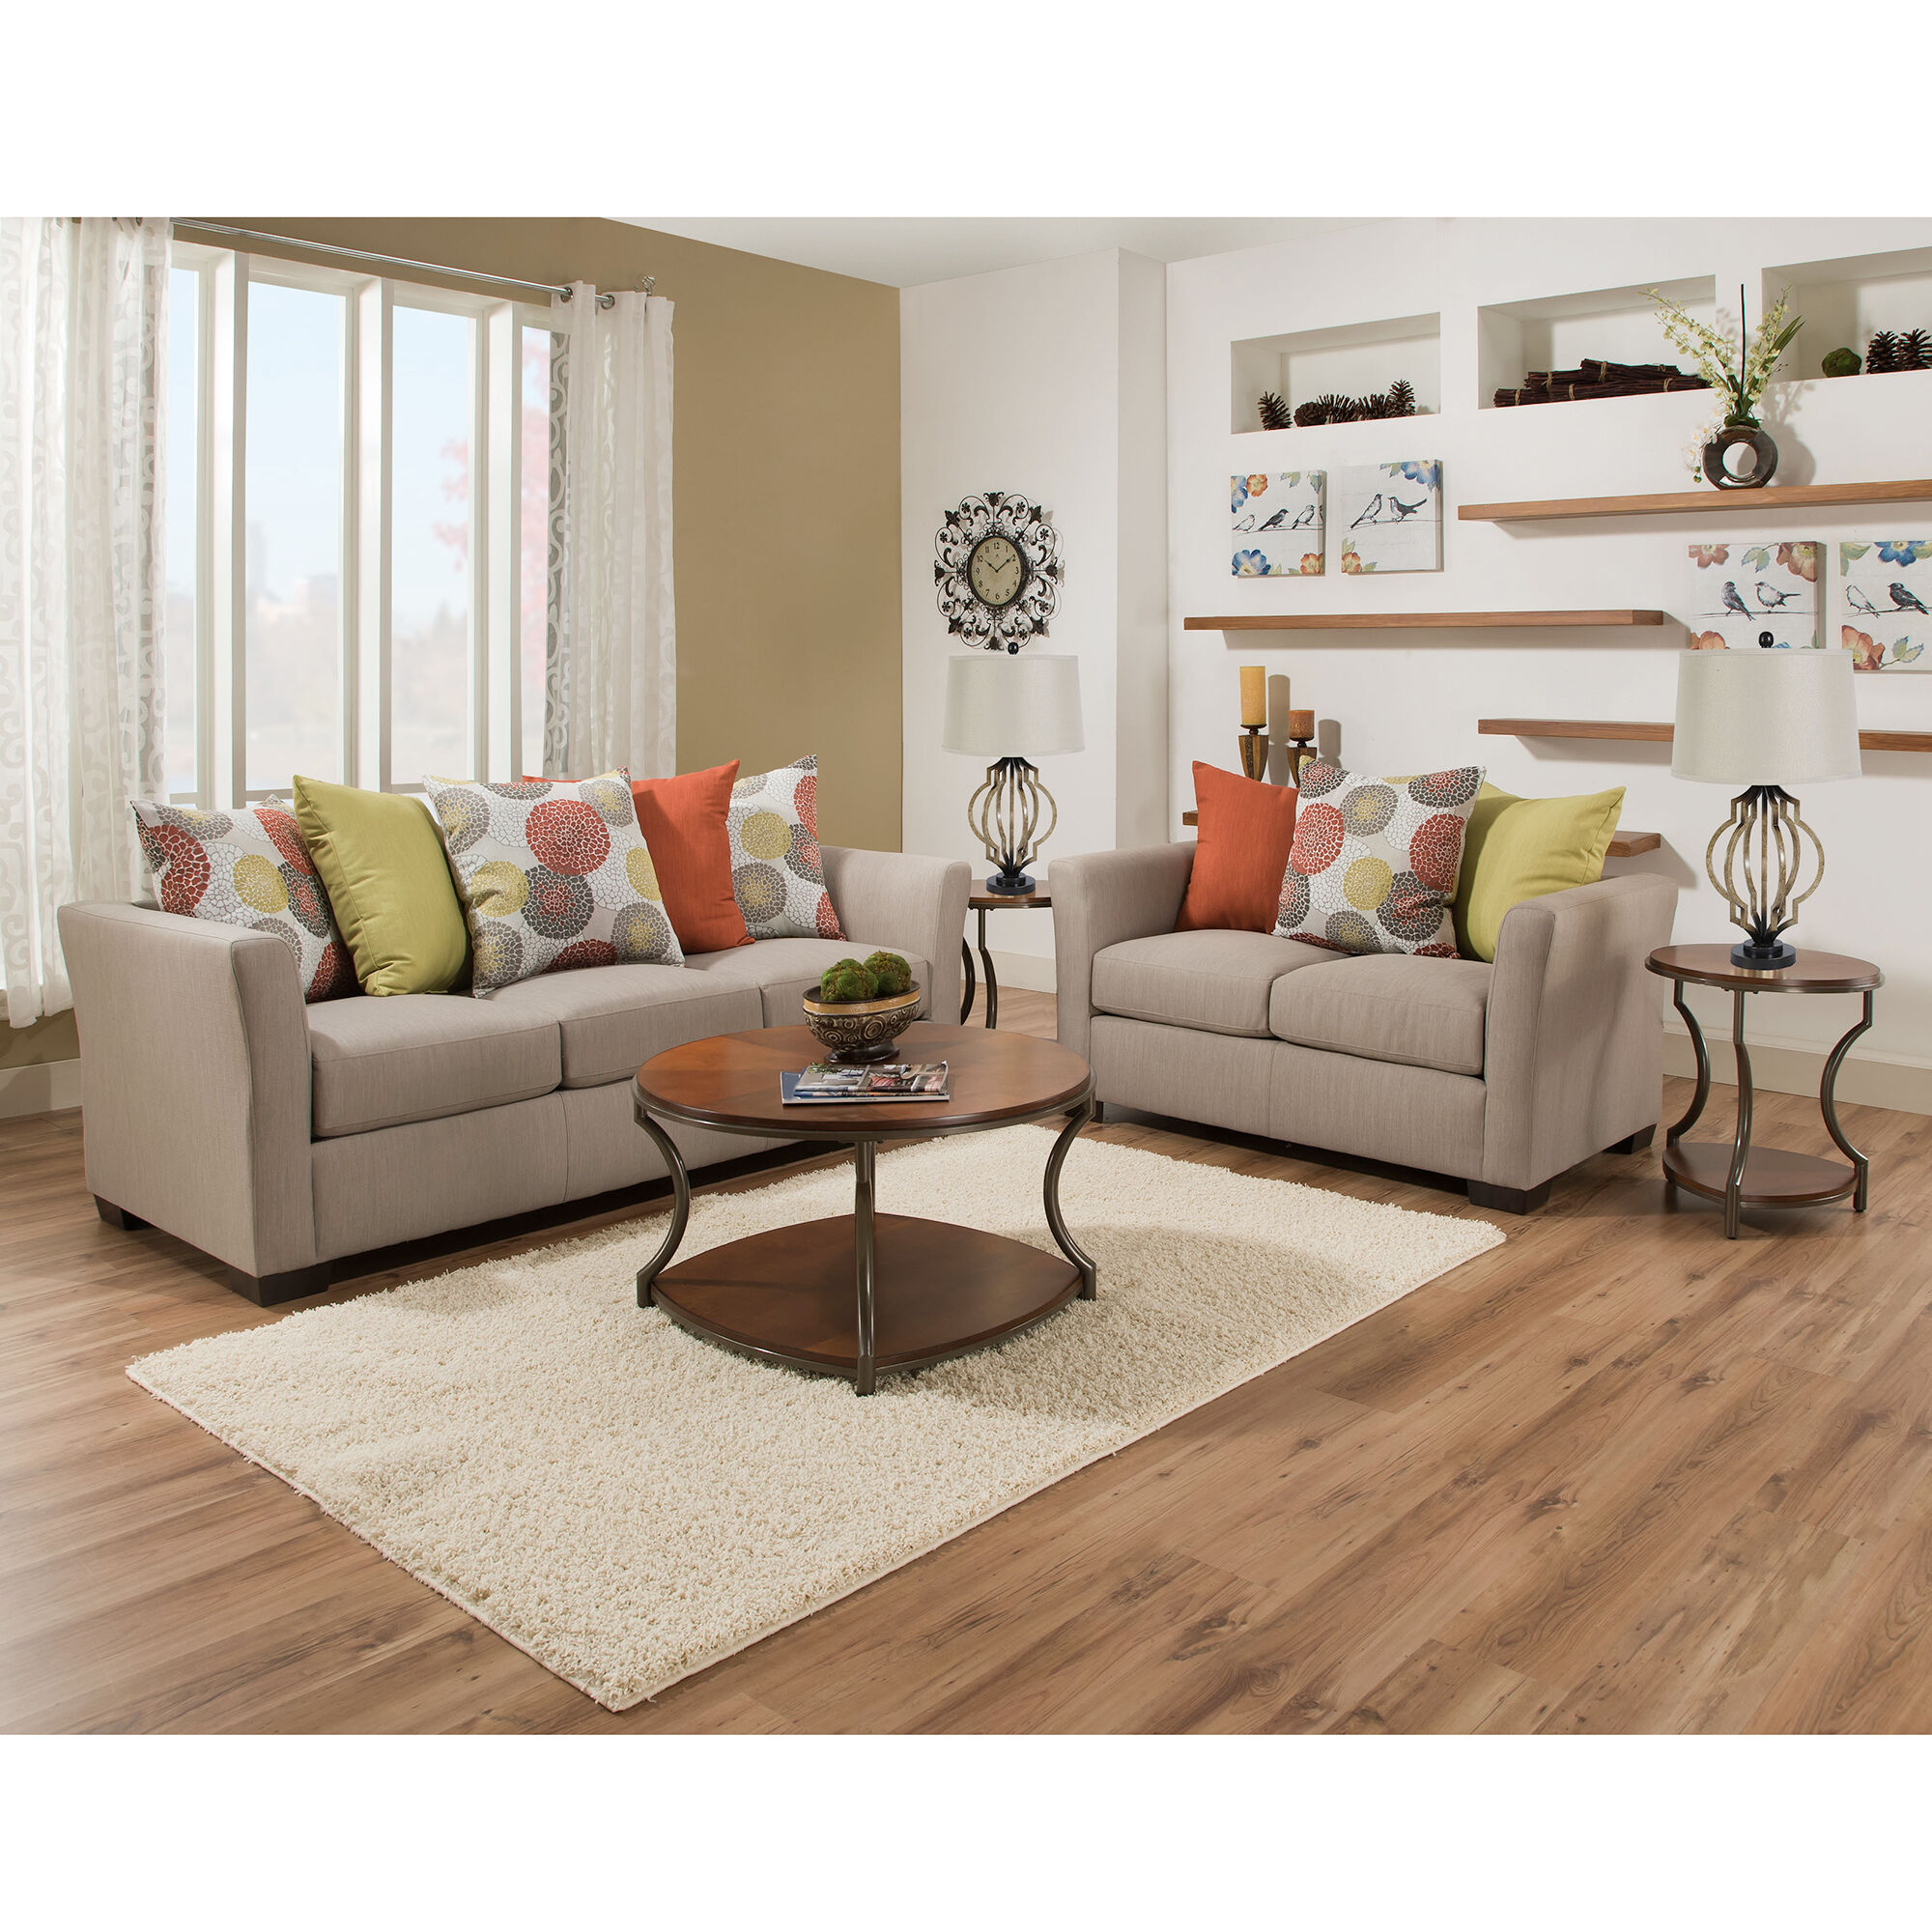 2 Piece Ember Living Room Collection